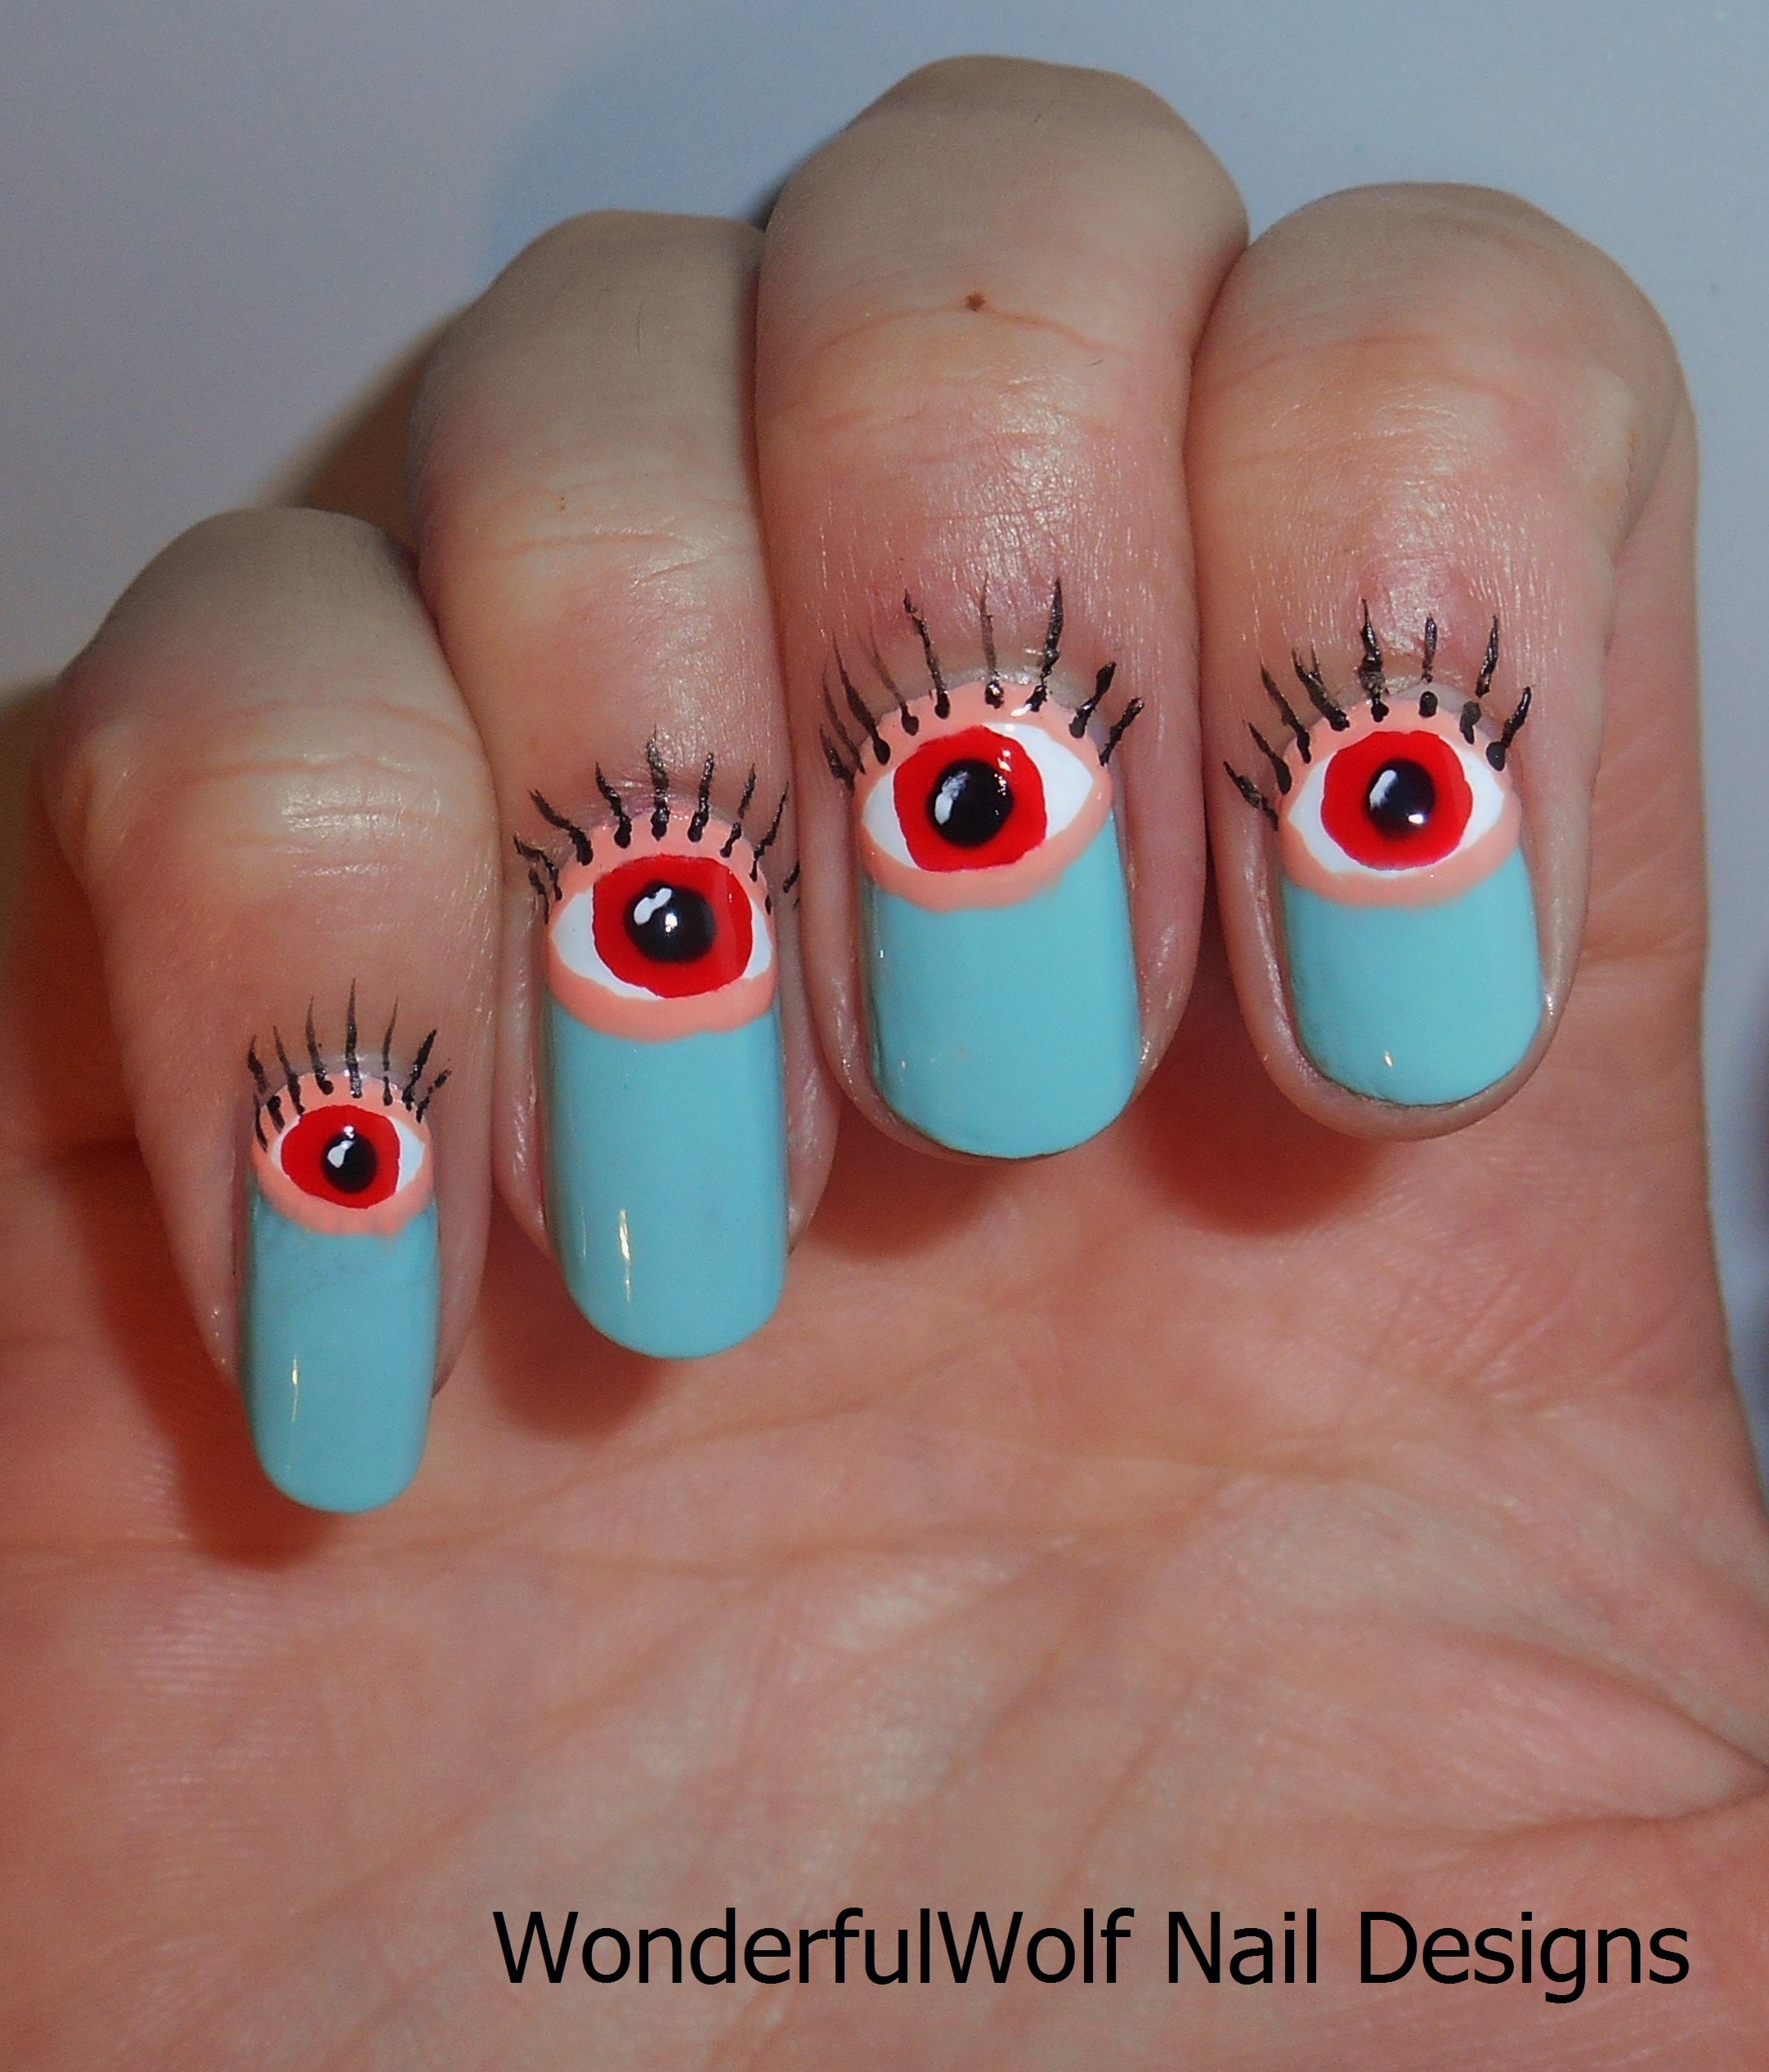 Eyeball Nail Art – WonderfulWolf